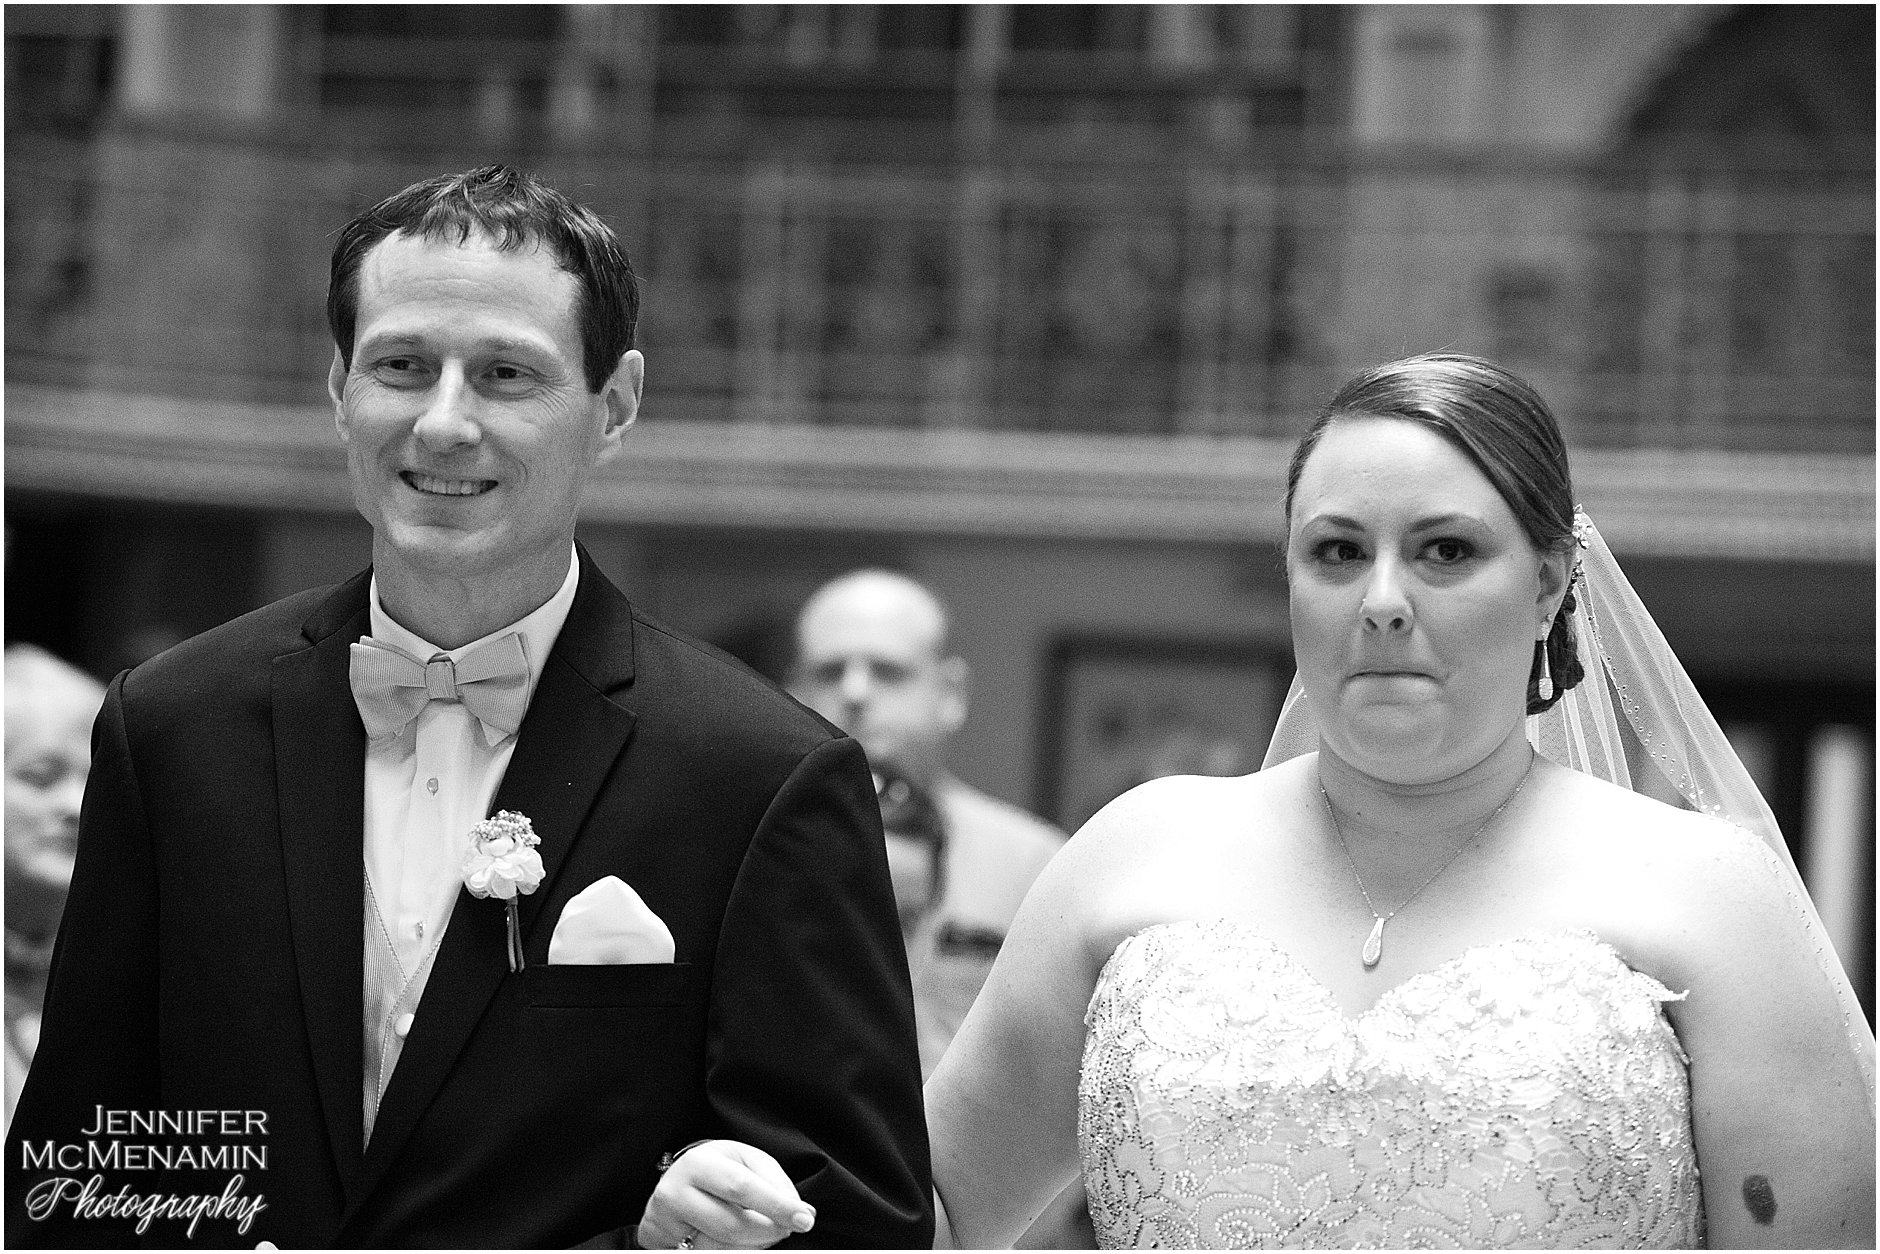 018-KinzlerShaull_02159bw_Jennifer-McMenamin-Photography-Peabody-Library-wedding